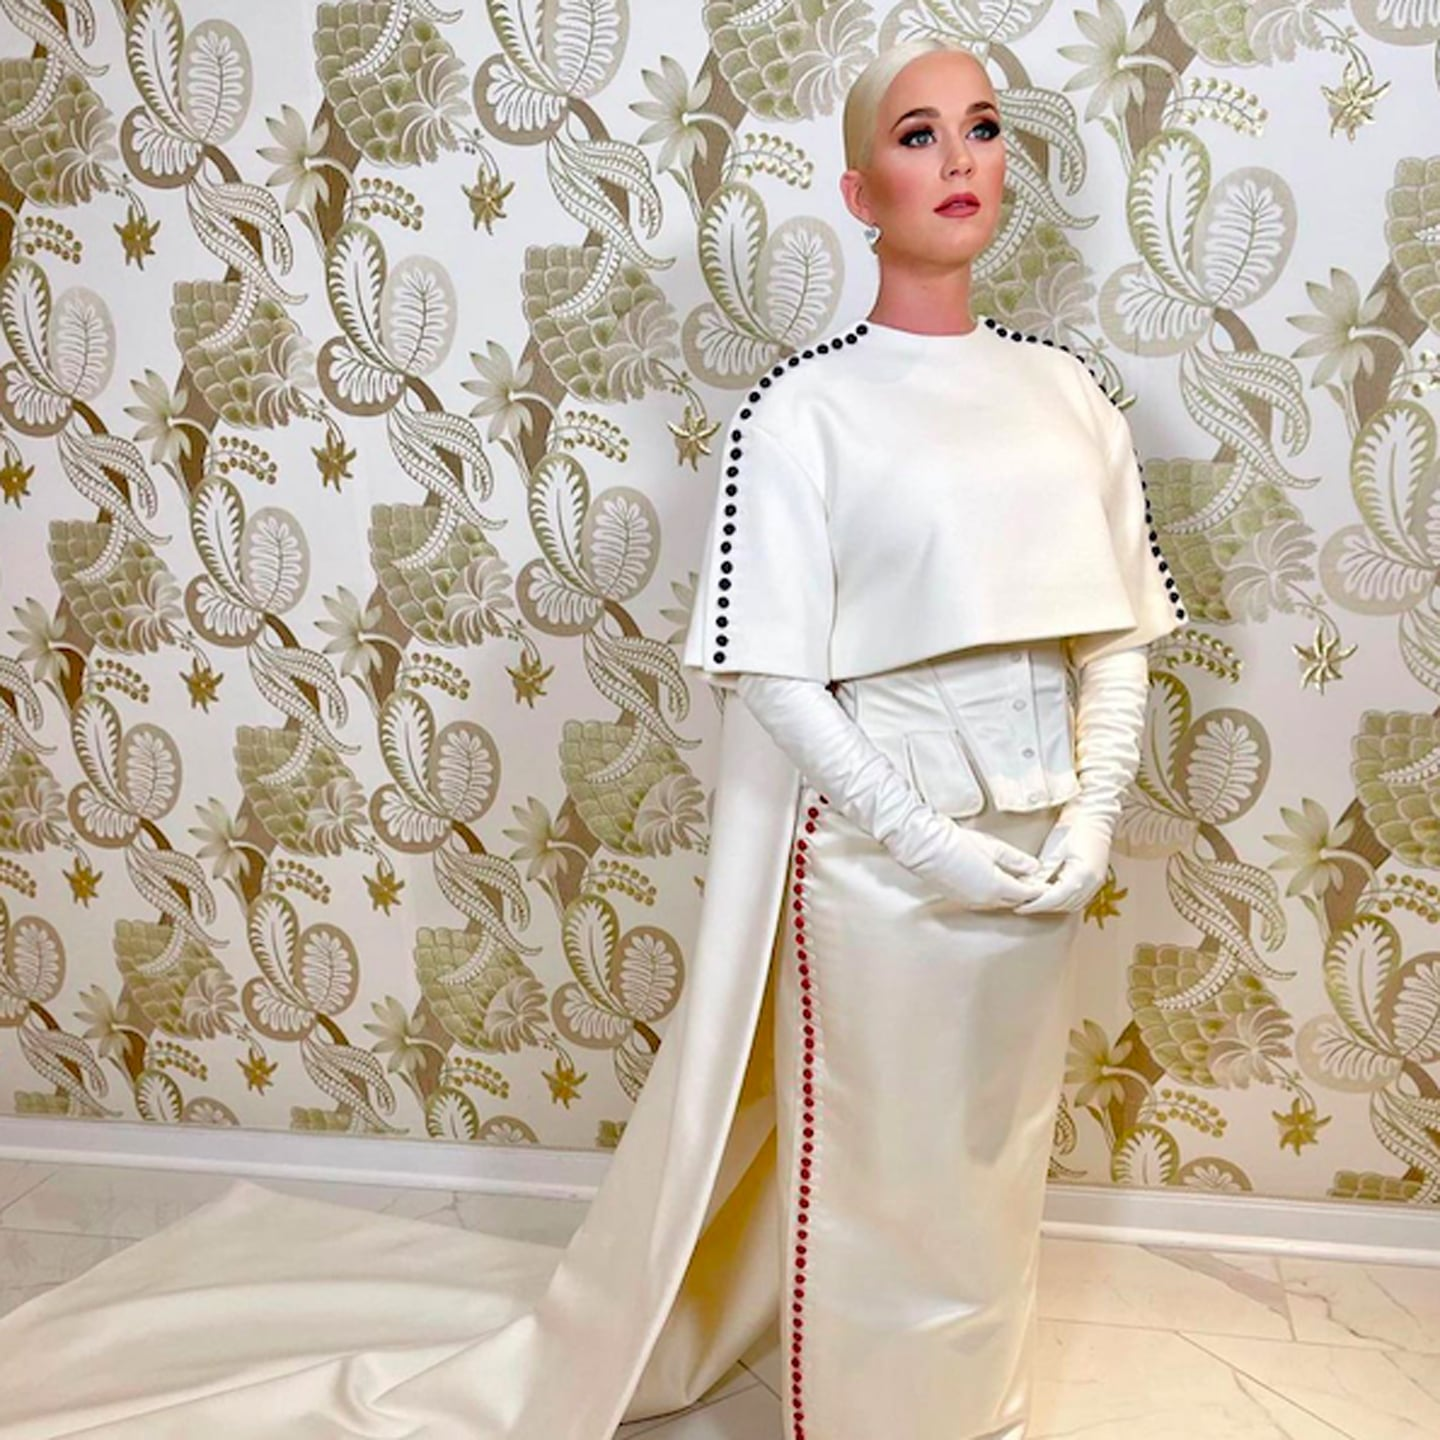 See What Katy Perry Wore to Perform at Biden's Inauguration | POPSUGAR Fashion